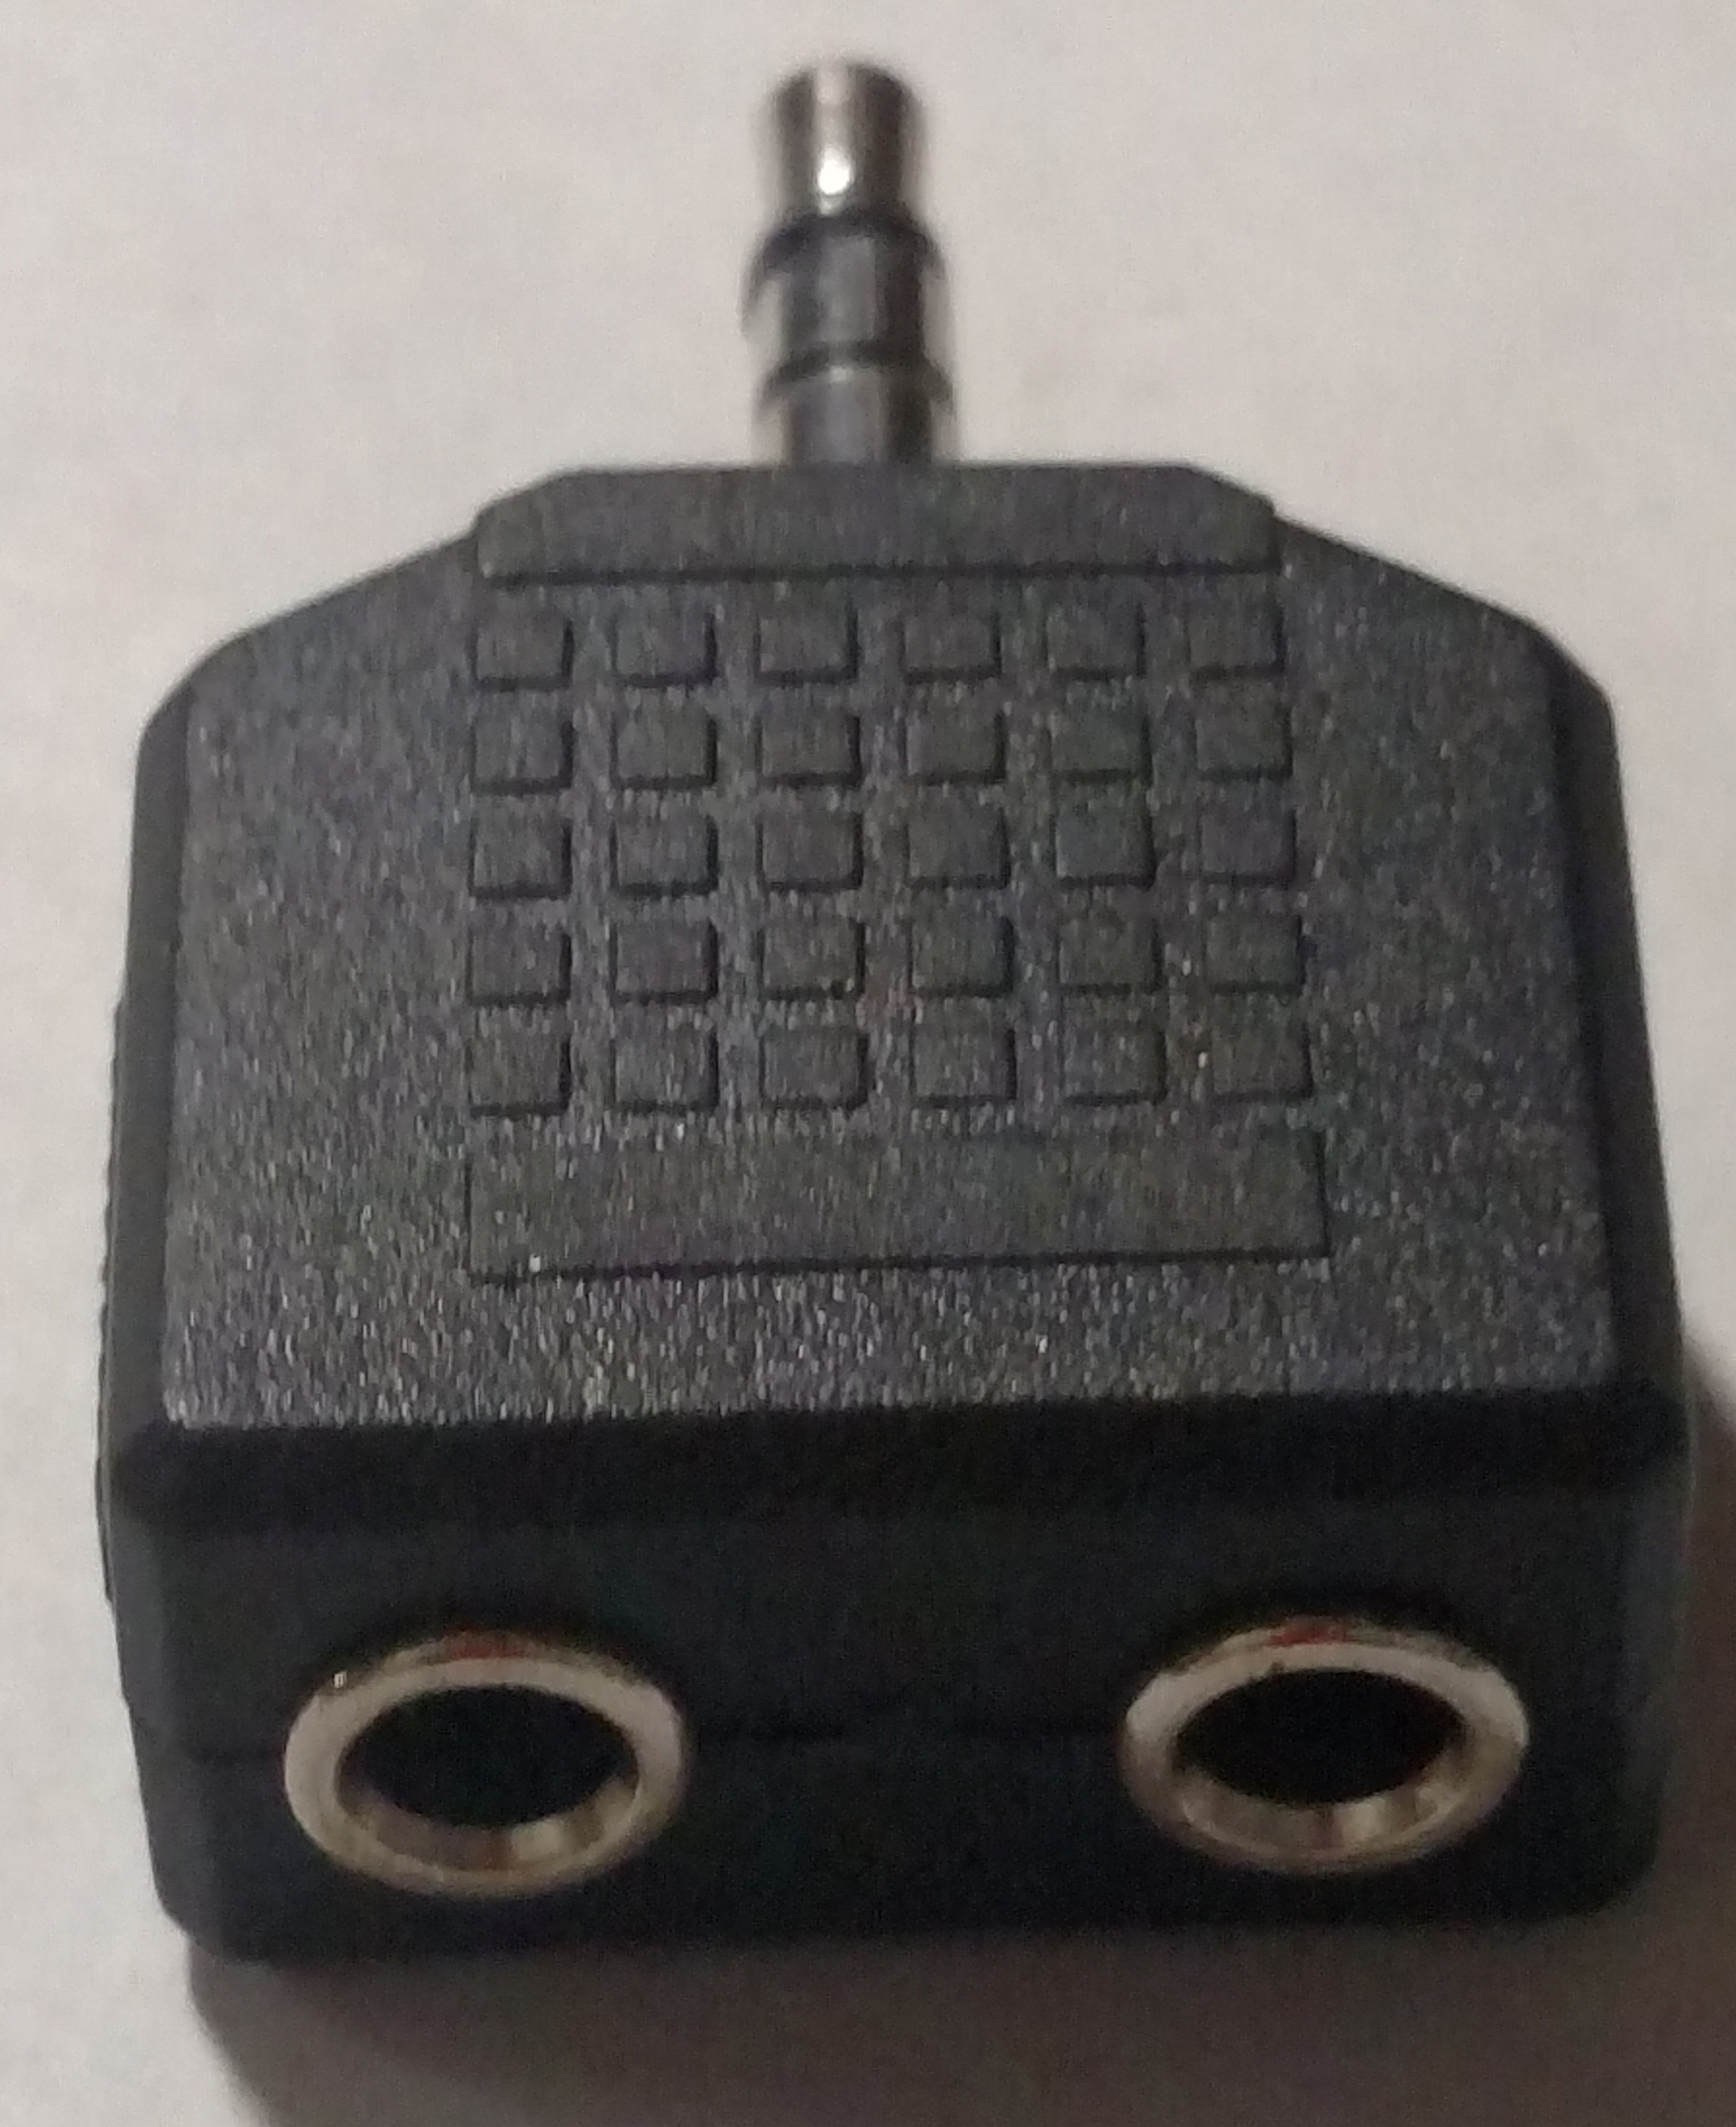 AD531X - Marmat Y Adapter Single 3.5 Plug To Two 3.5 Jacks